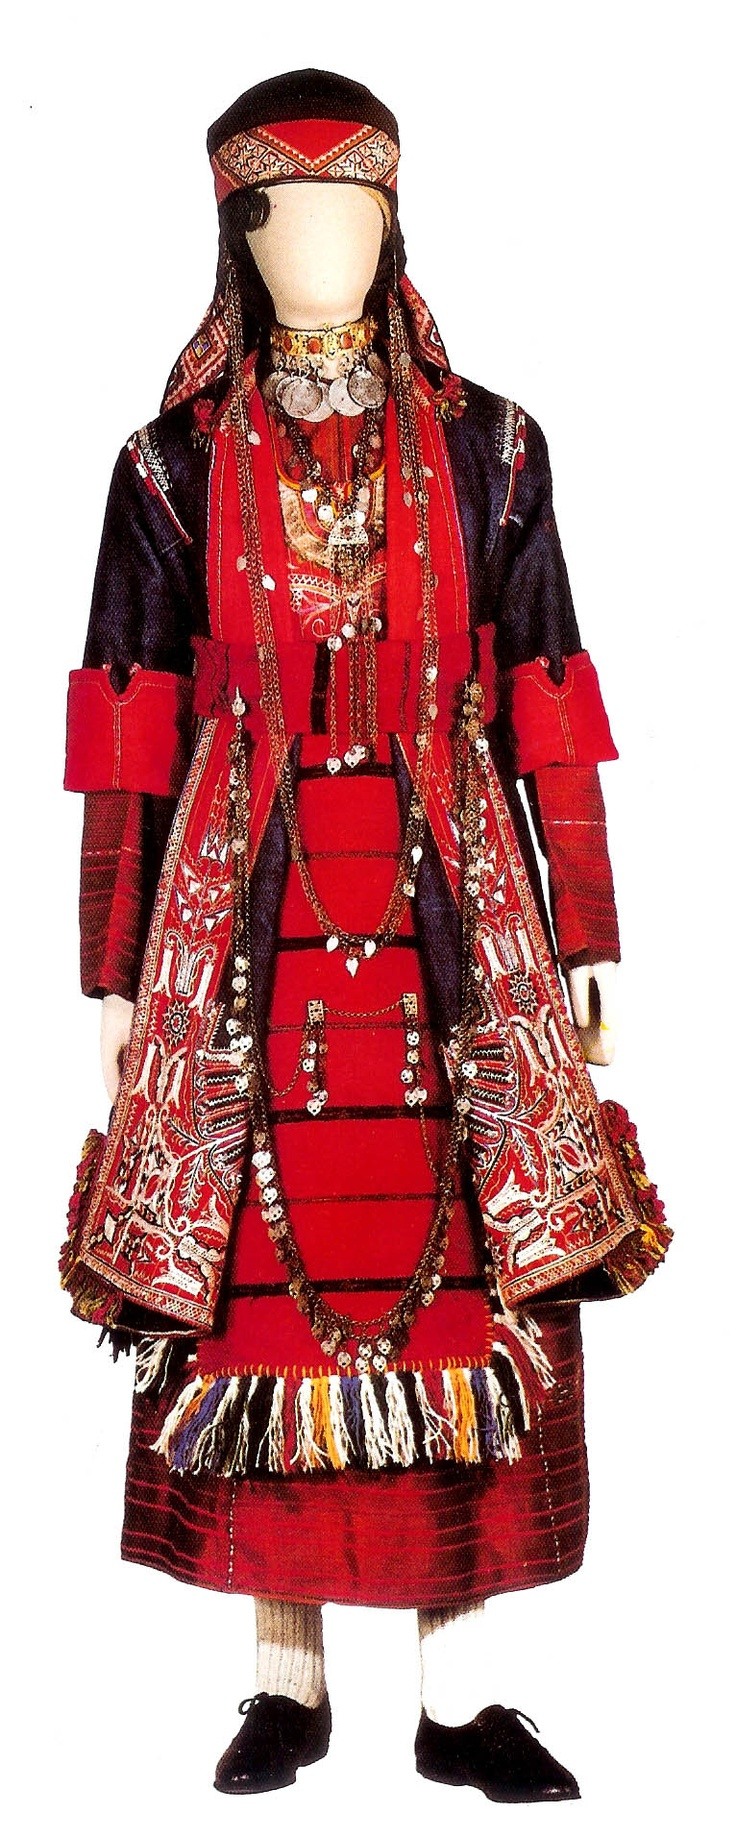 Bridal costume worn in the five largest villiages of Thesaloniki. 19th c